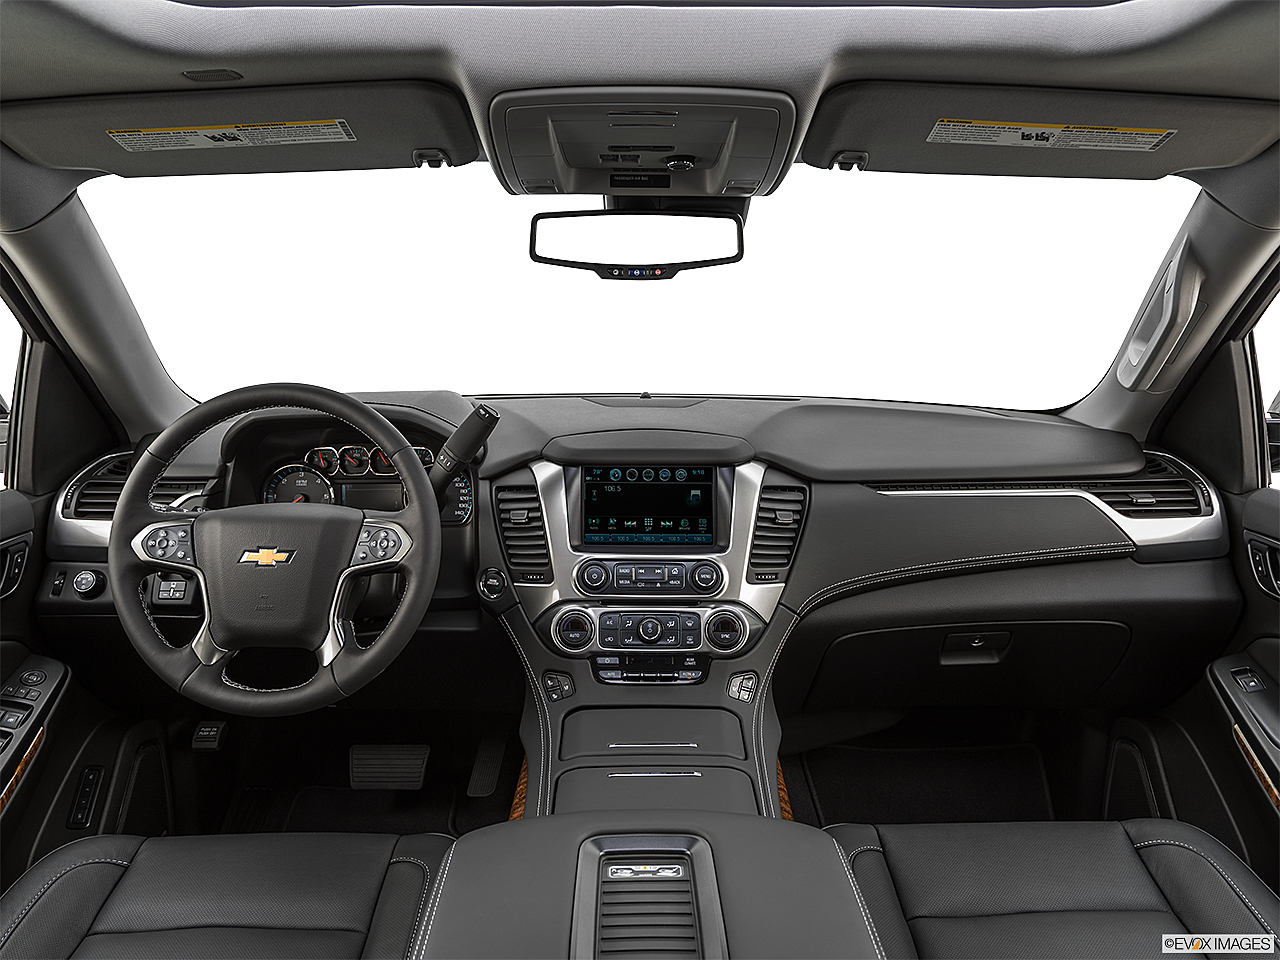 2019 Chevrolet Tahoe Premier, centered wide dash shot